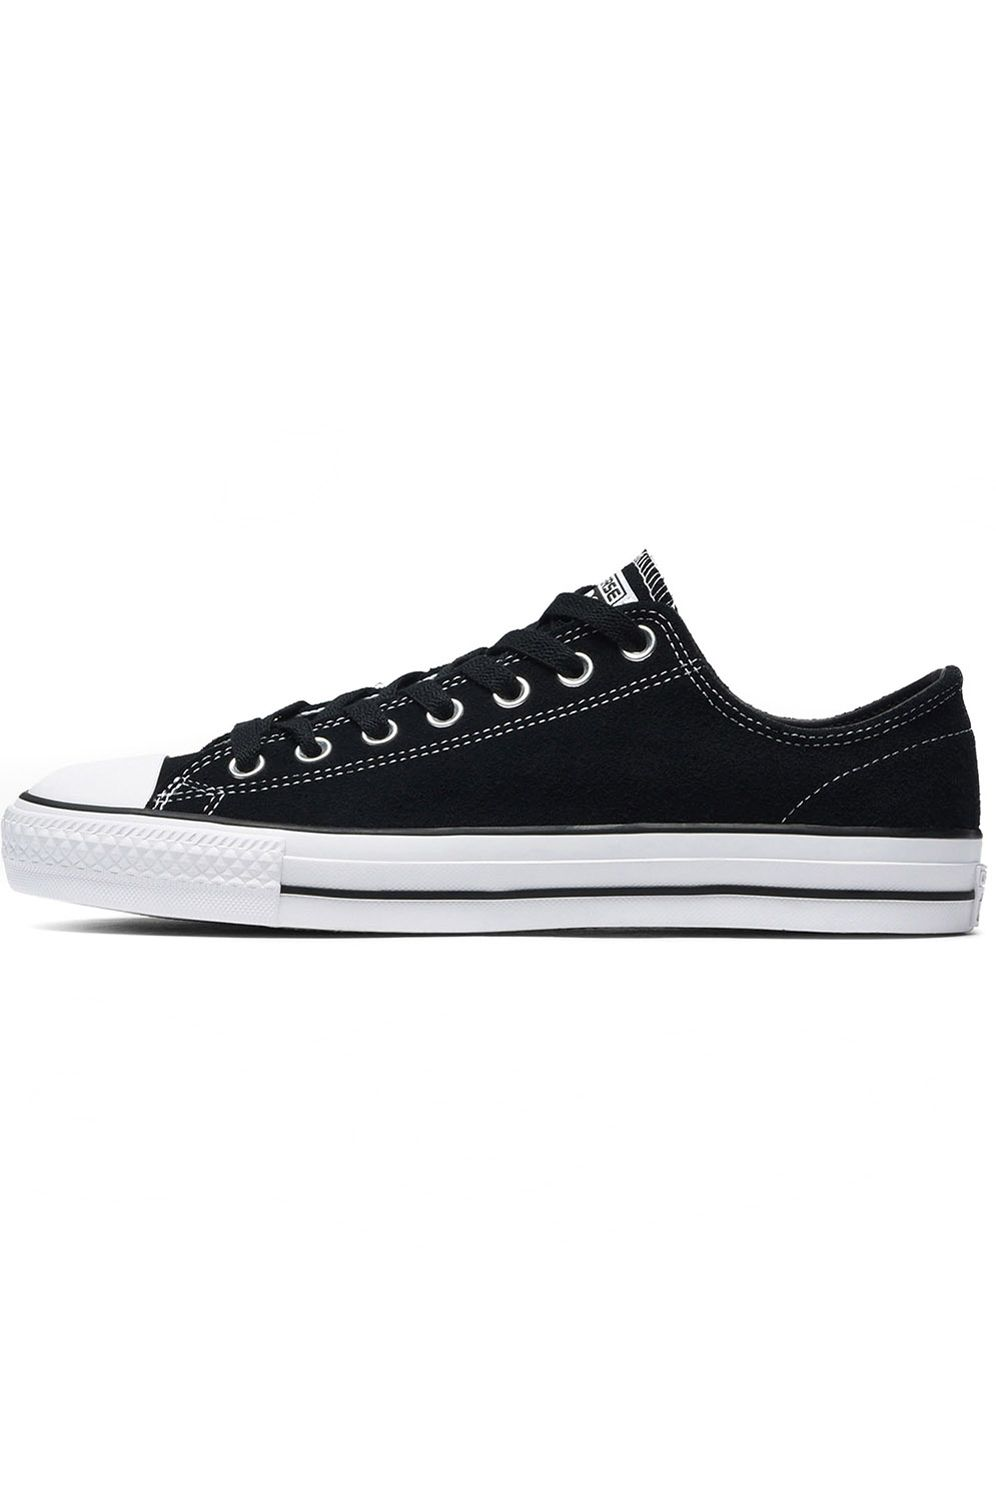 Tenis Converse CHUCK TAYLOR ALL STAR PRO (REFINEMENT) Black